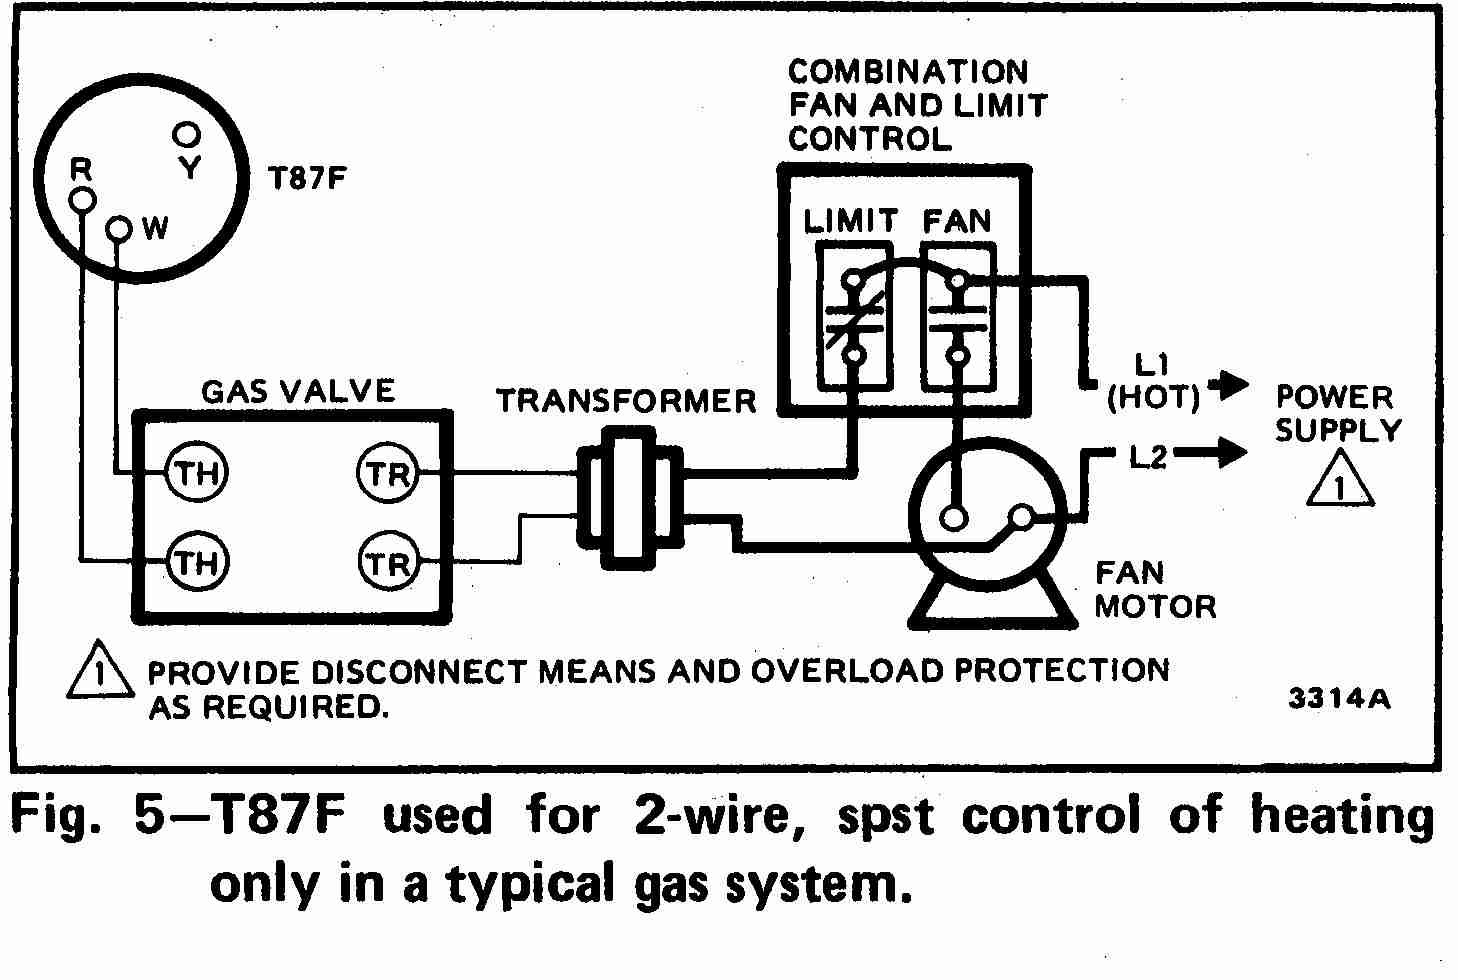 Package Unit Thermostat Wiring Diagrams Hvac Color Code Goodman Diagram New Image Heat Pump